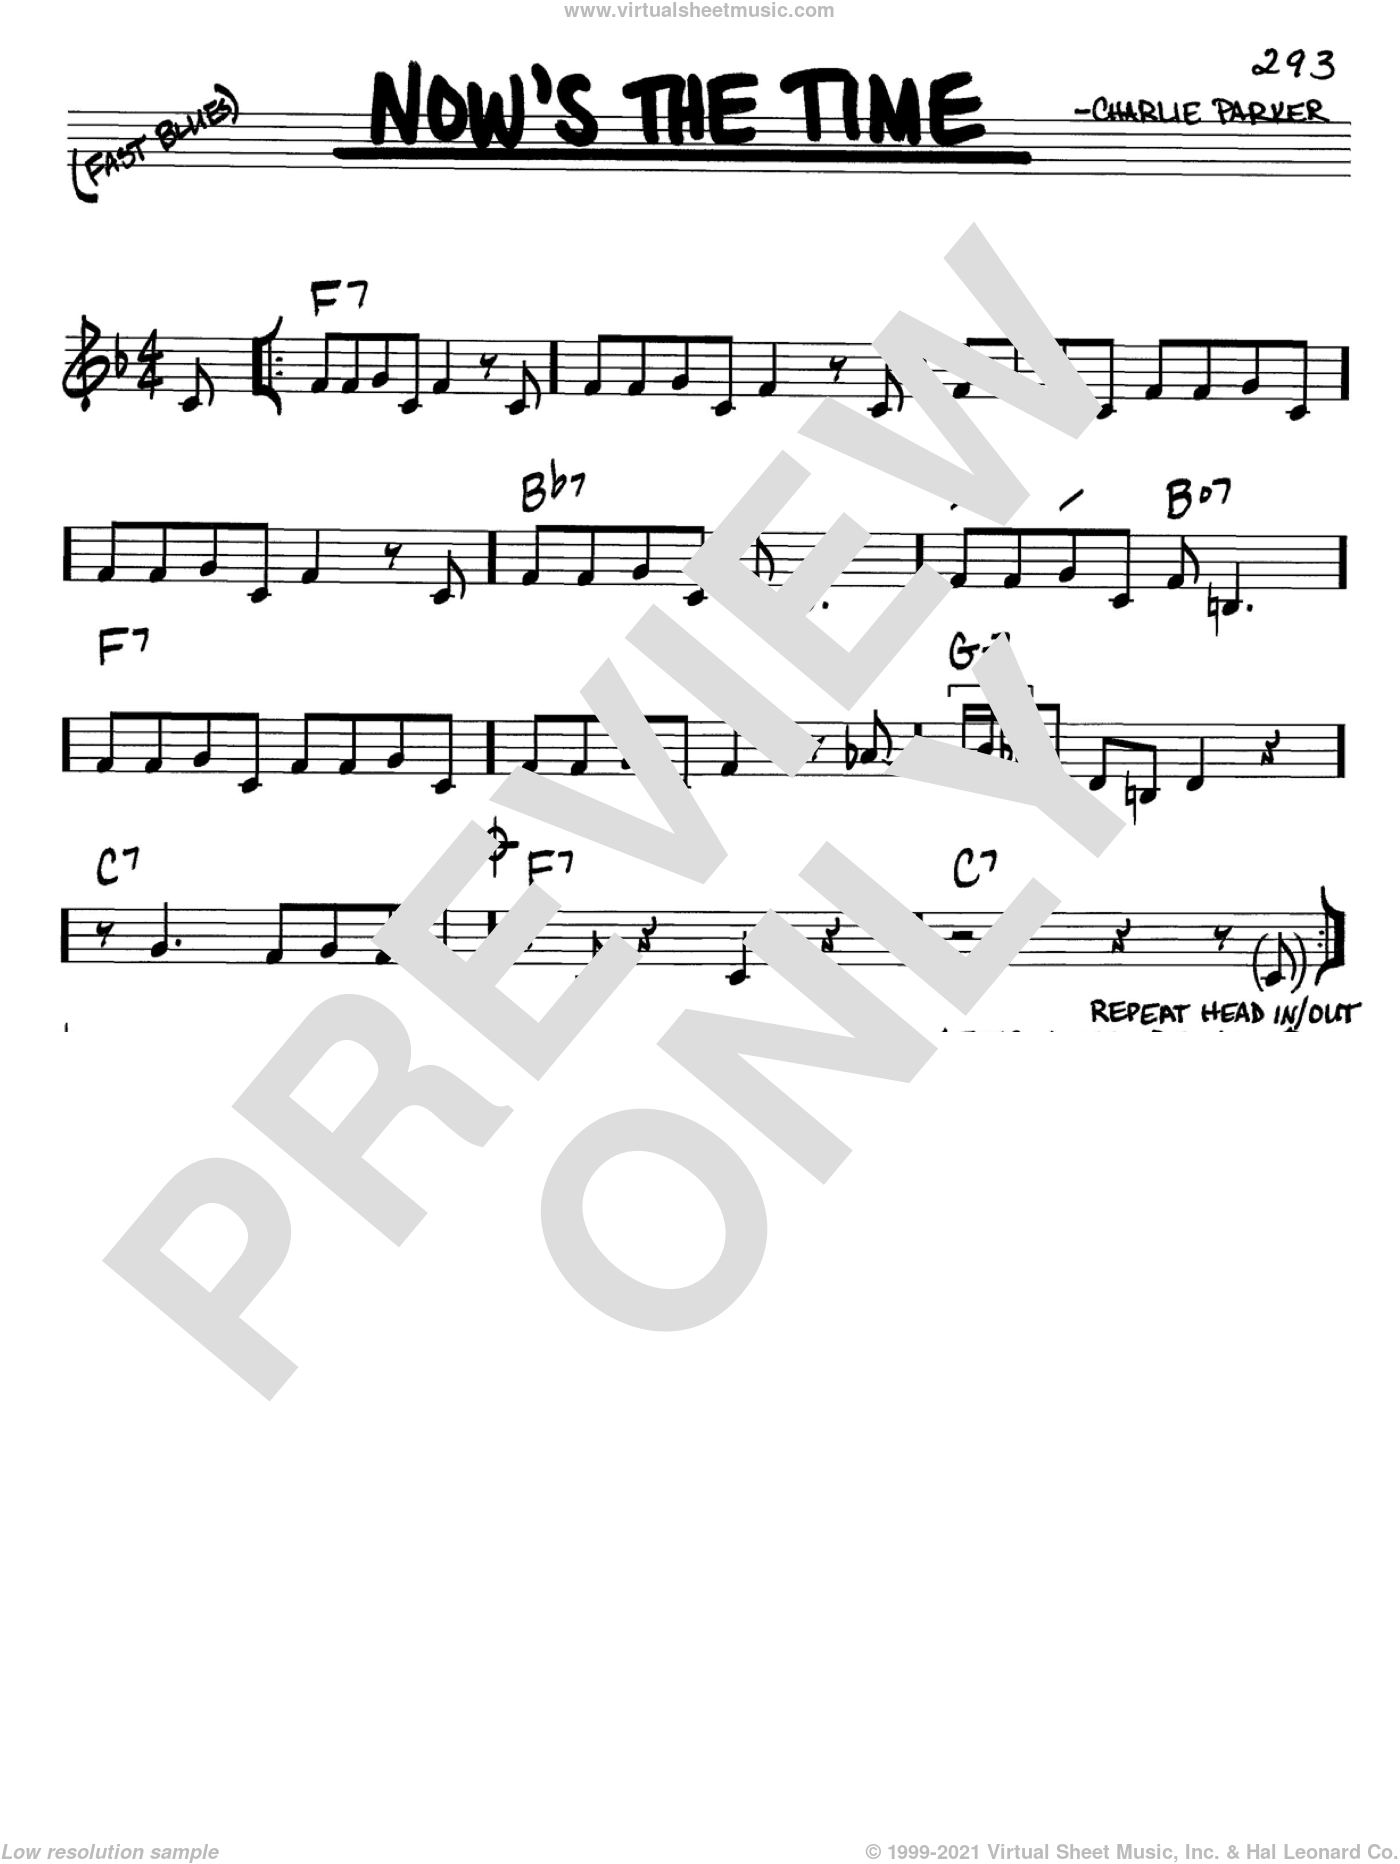 Now's The Time sheet music for voice and other instruments (C) by Charlie Parker. Score Image Preview.